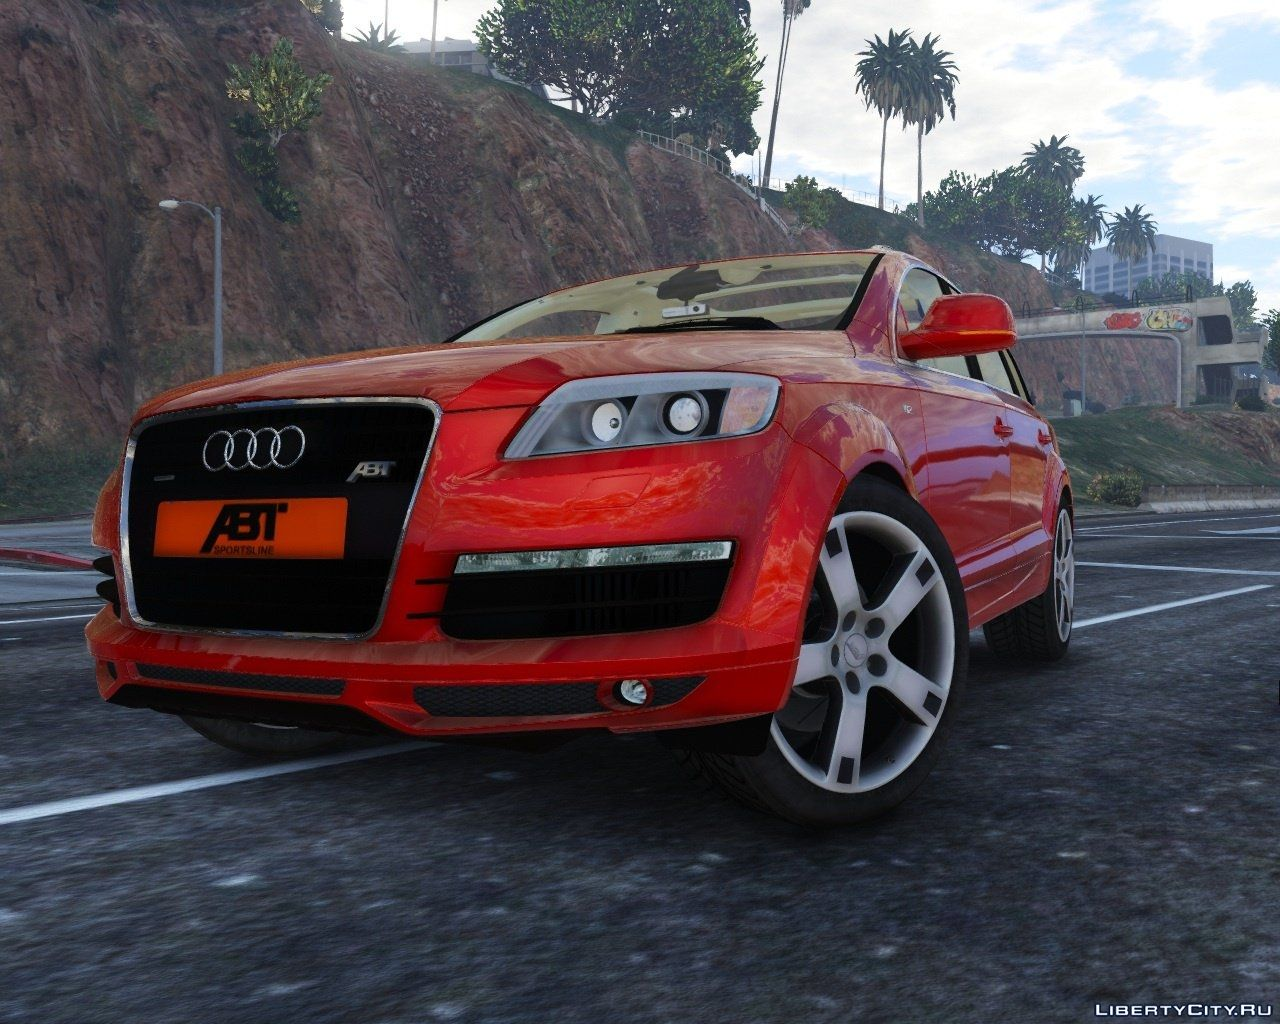 2009 Audi As7 V12 Abt Add On Replace 1 0 Gta 5 HD Wallpapers Download free images and photos [musssic.tk]